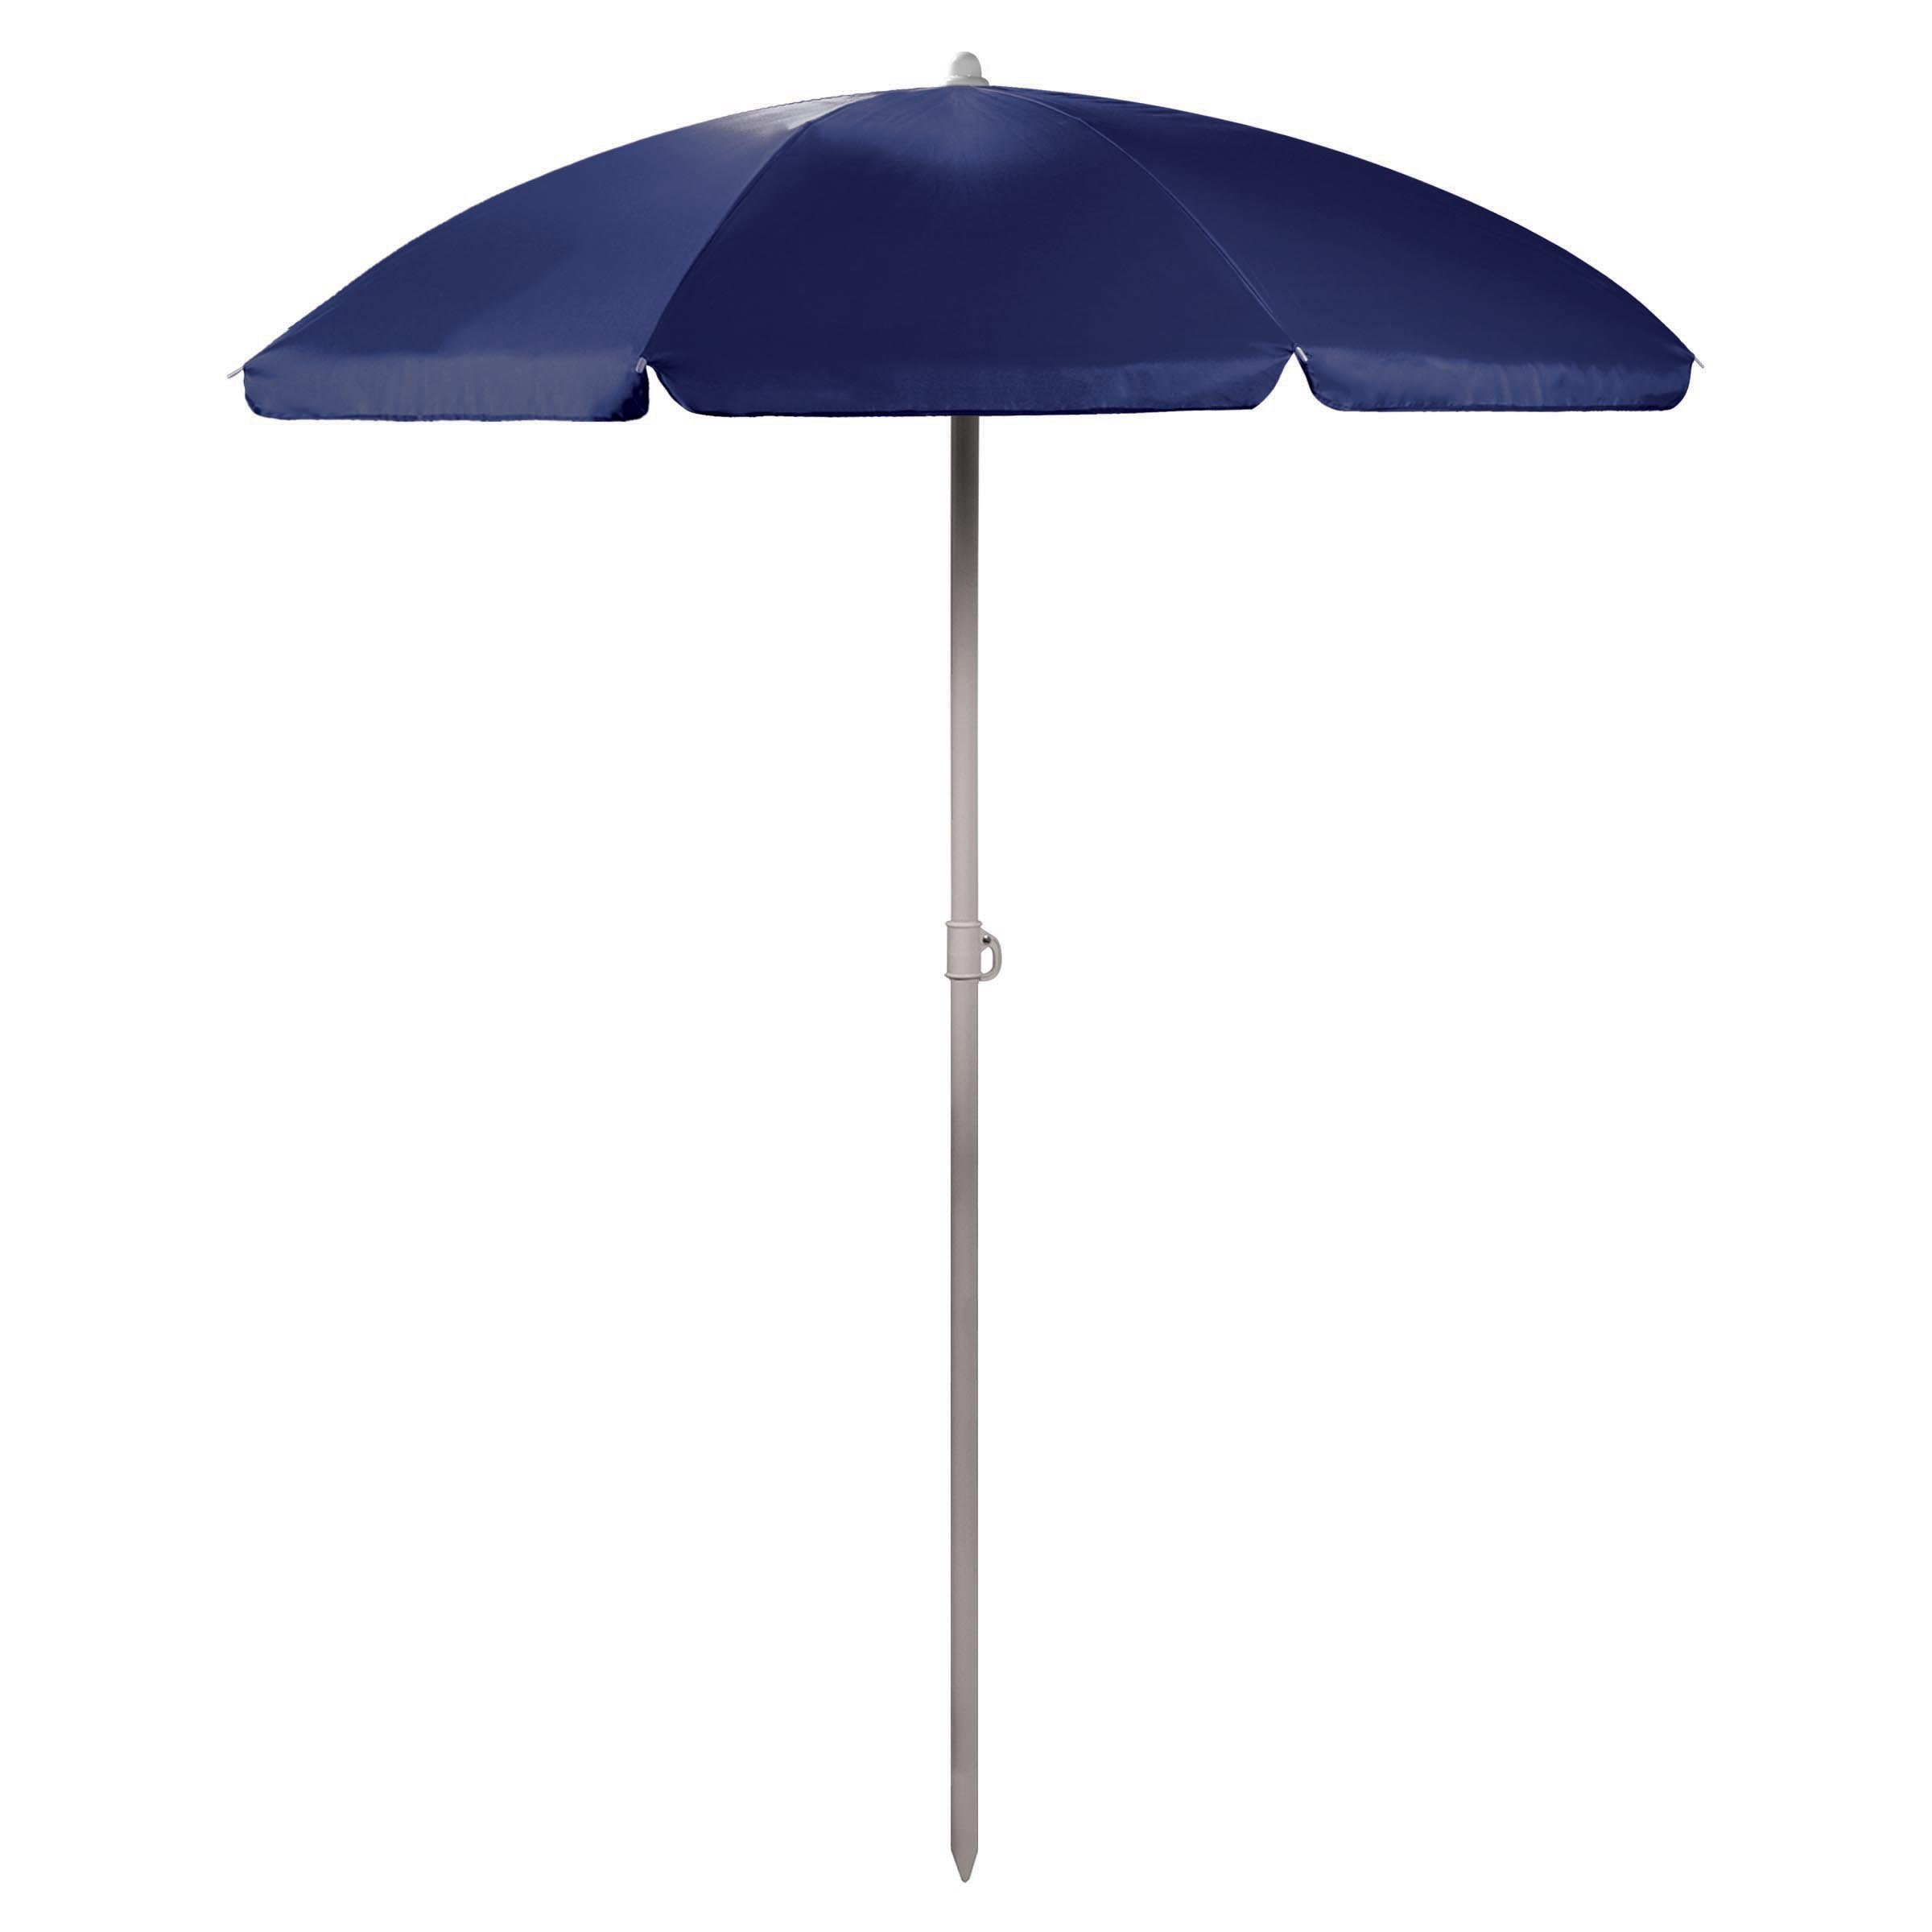 ONIVA - a Picnic Time Brand Outdoor Canopy Sunshade Umbrella 5.5', Navy by ONIVA - a Picnic Time brand